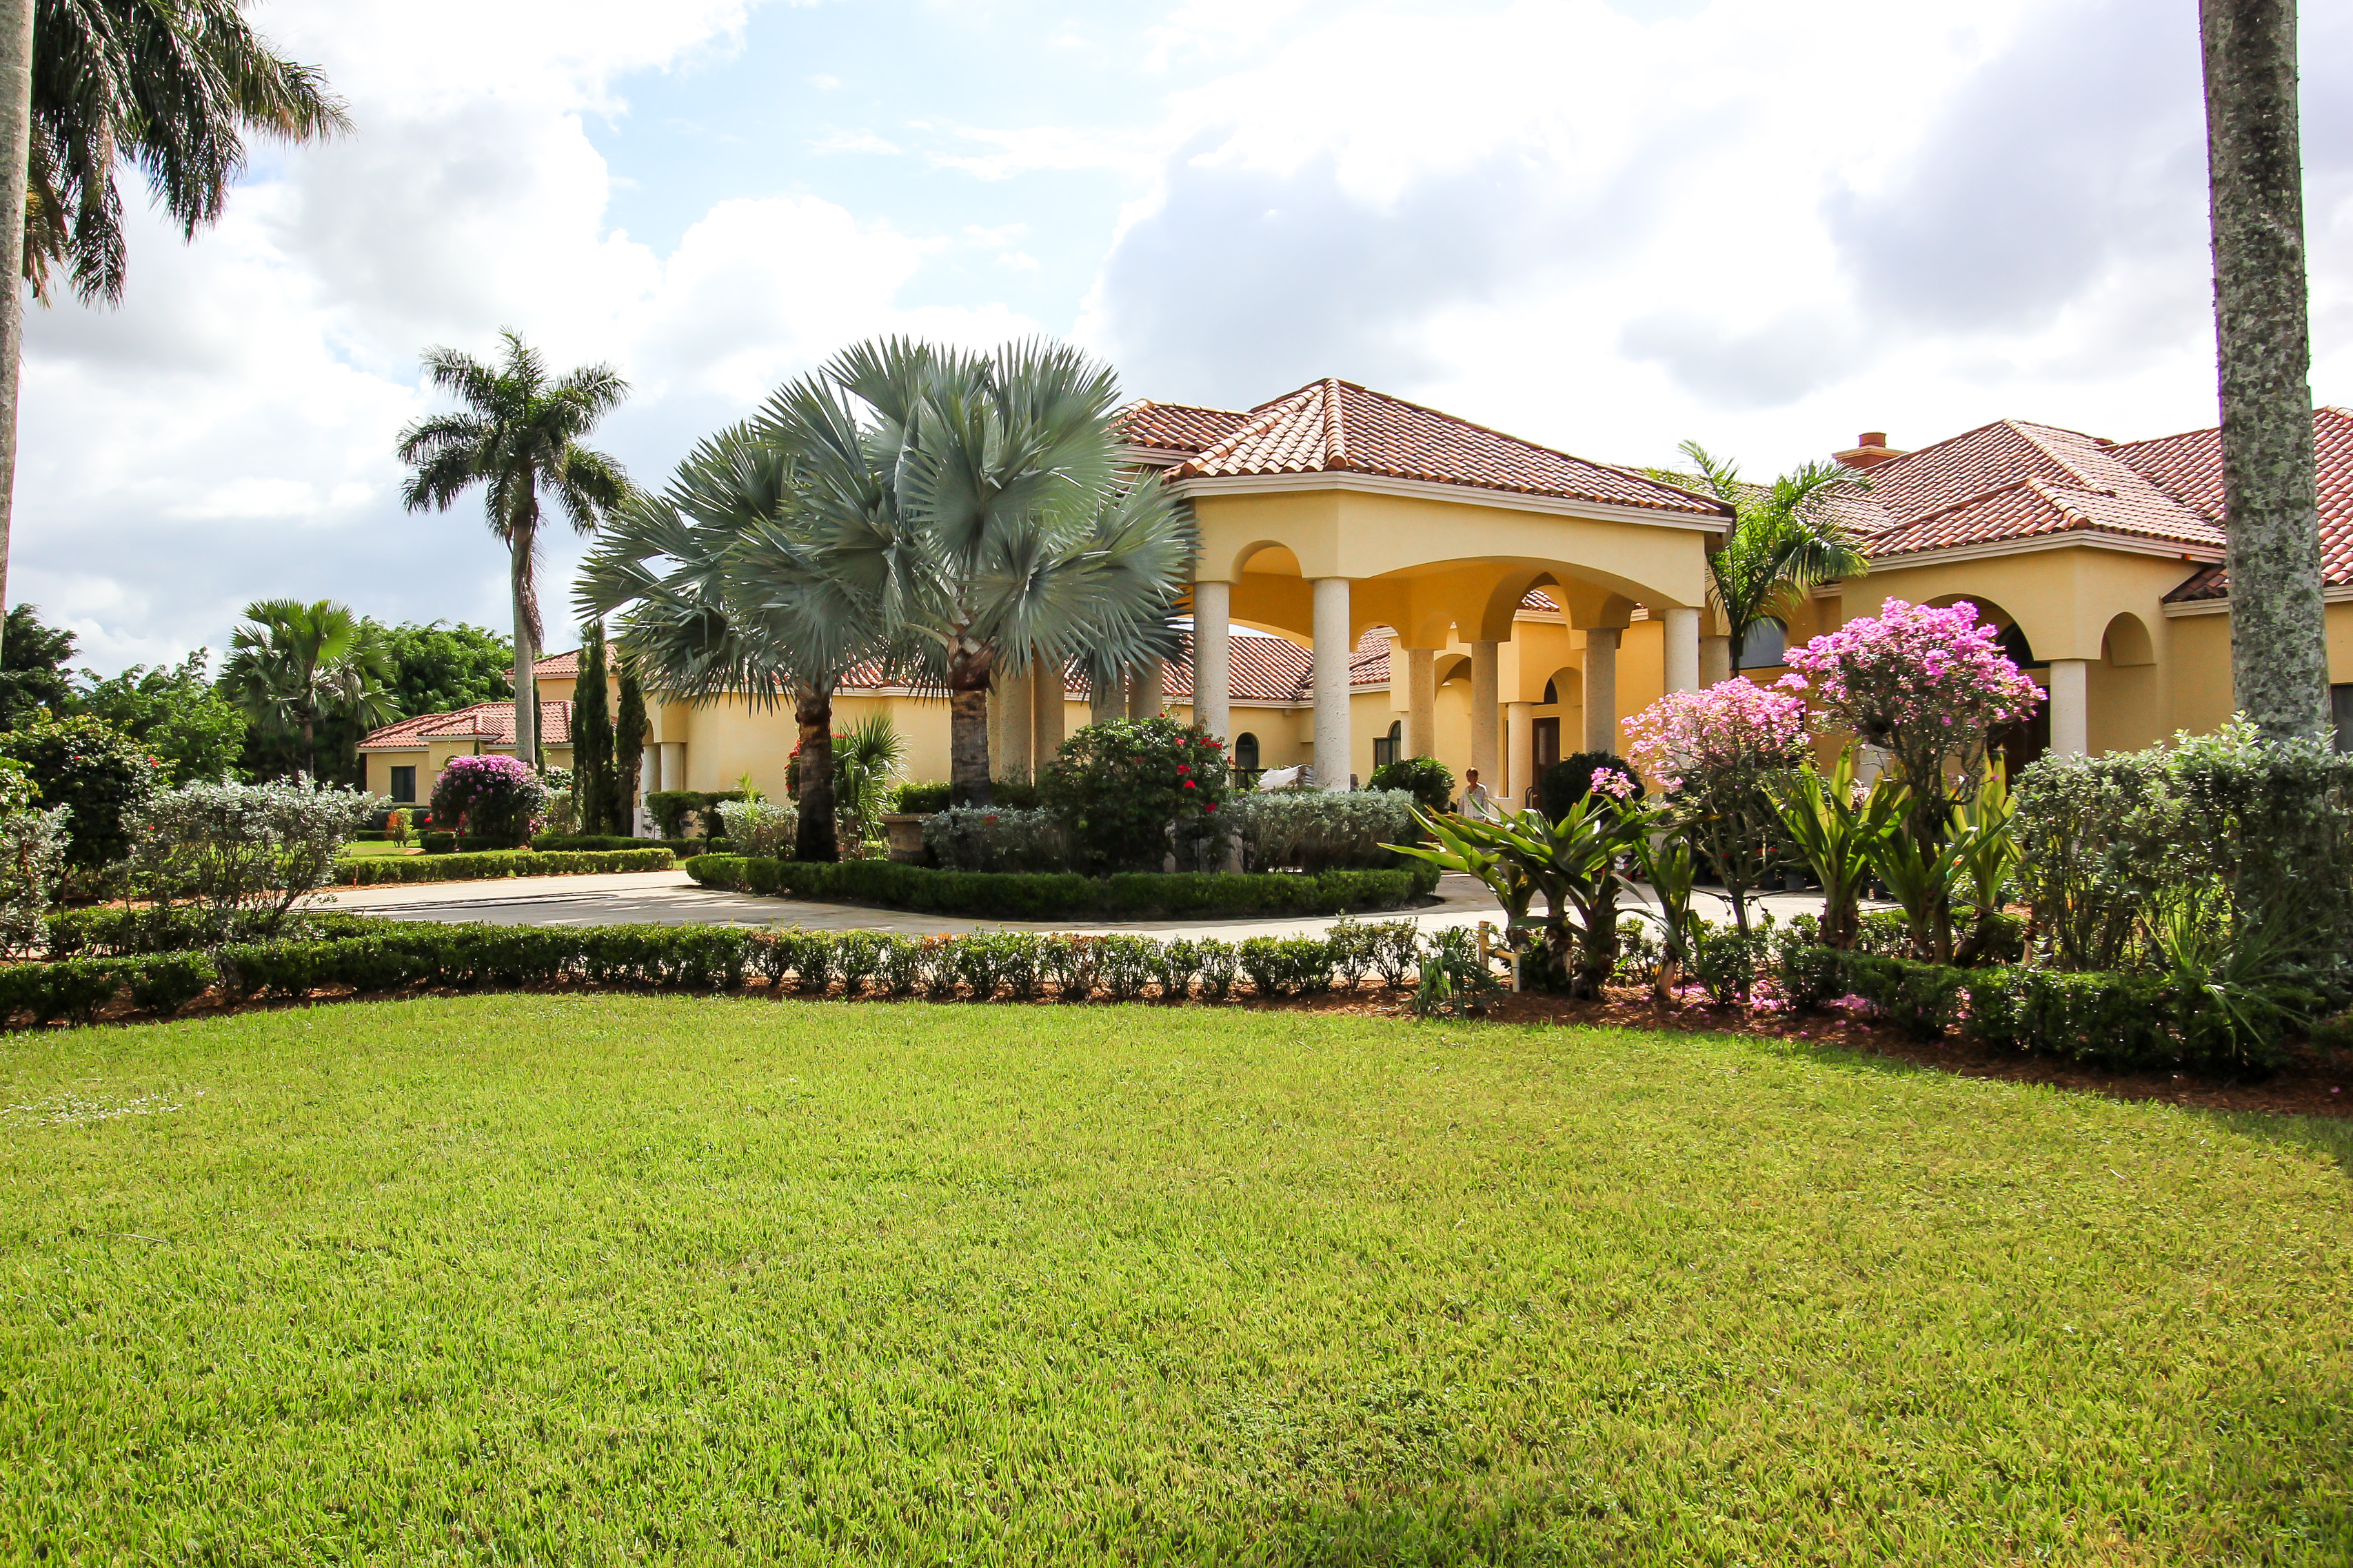 Maison unifamiliale pour l Vente à 15300 Golden Point Lane Palm Beach Point, Wellington, Florida, 33414 États-Unis